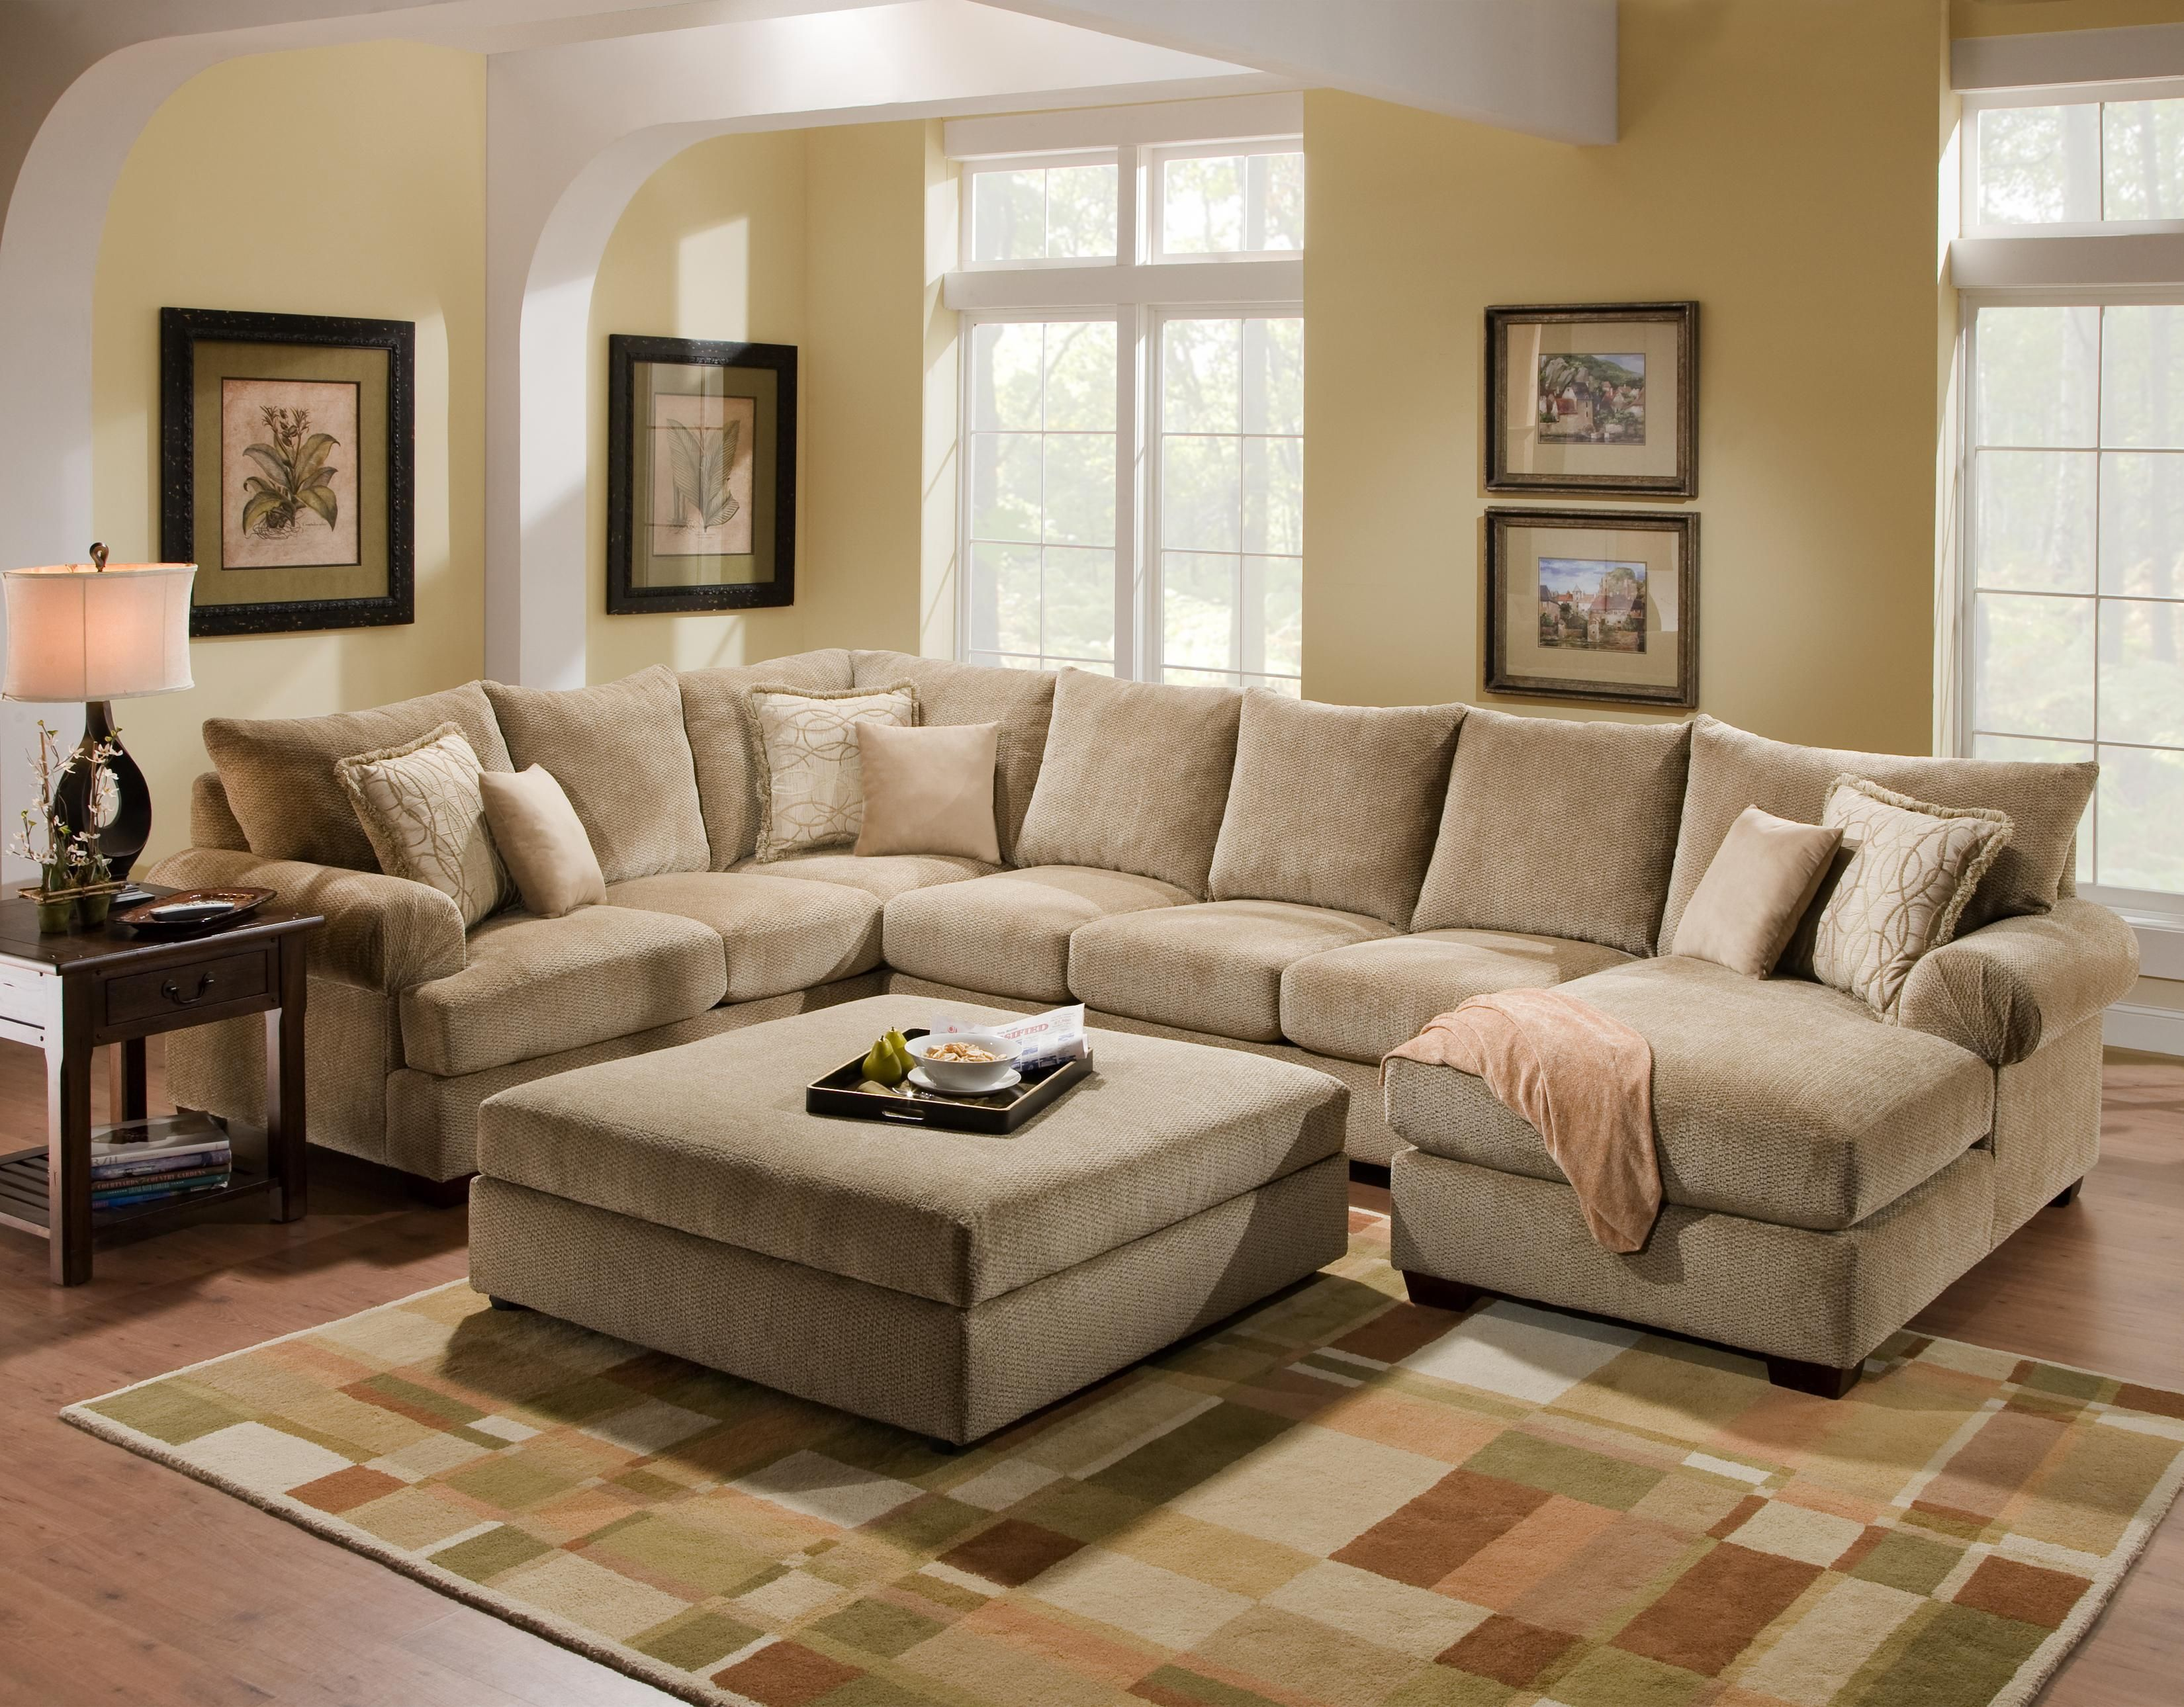 4510 Casual Sectional Sofa Group With Chaise By Corinthian